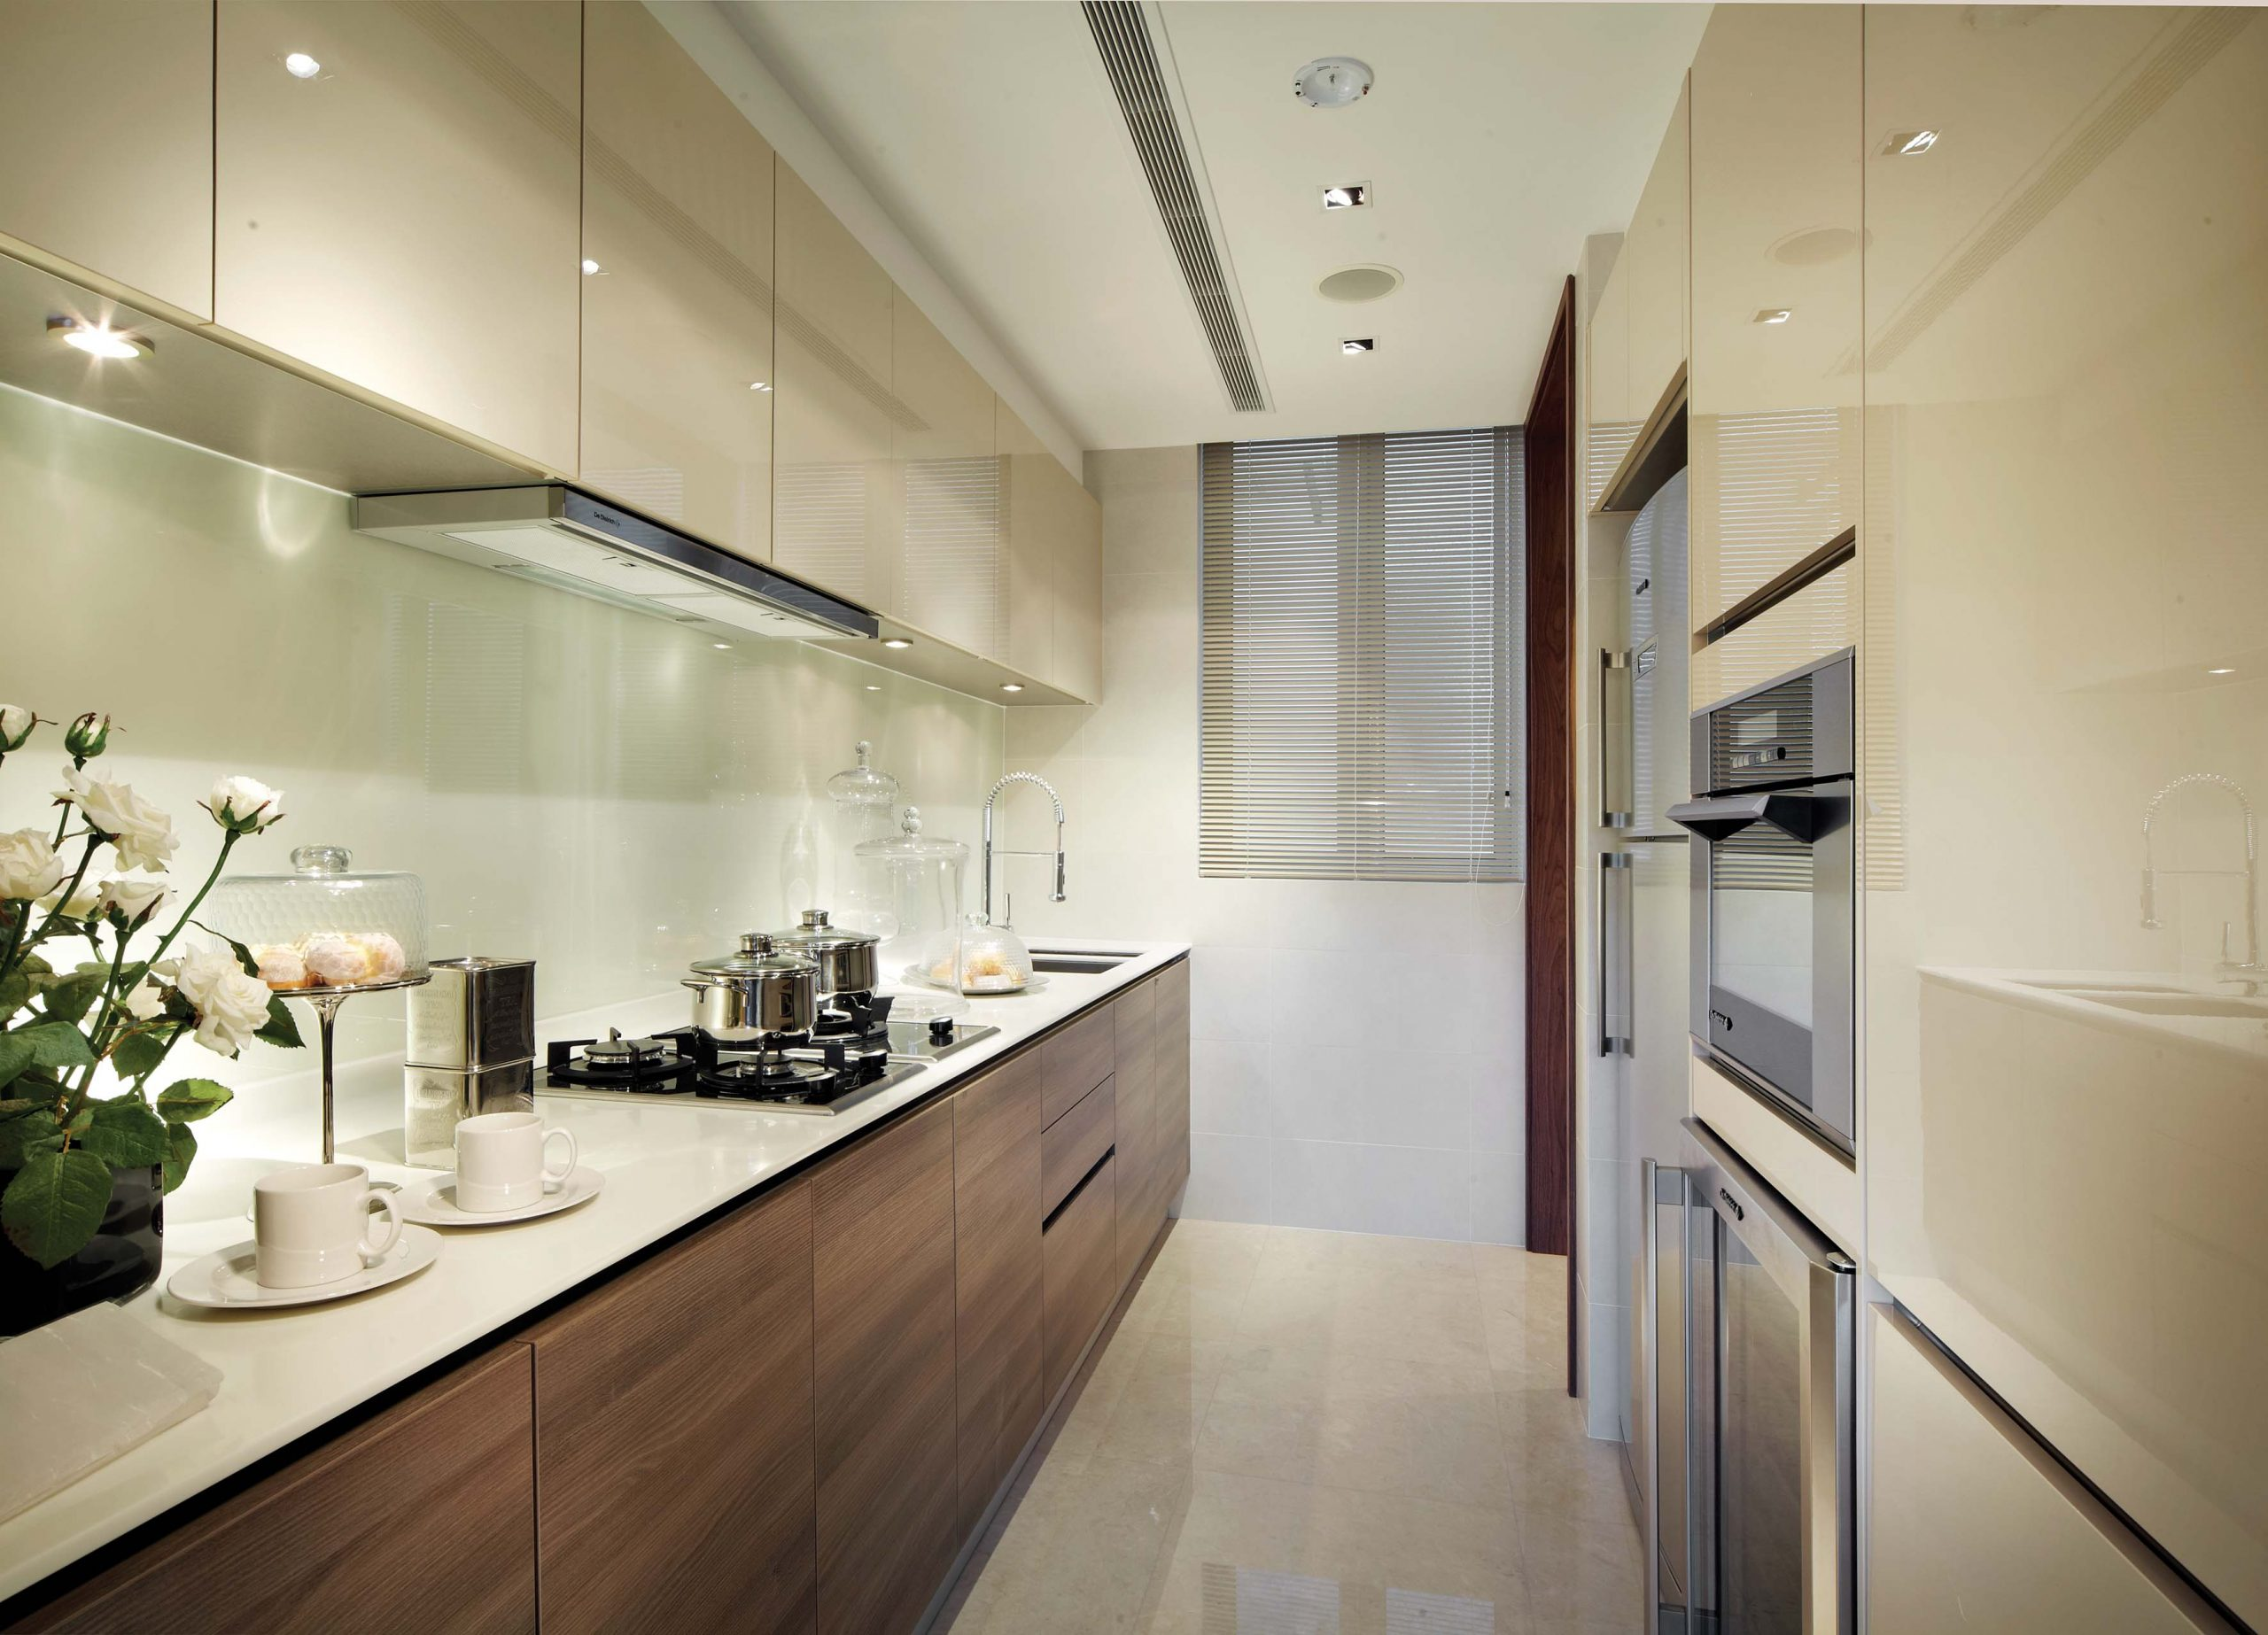 Penrose-Condo-kitchen-meyerise-singapore